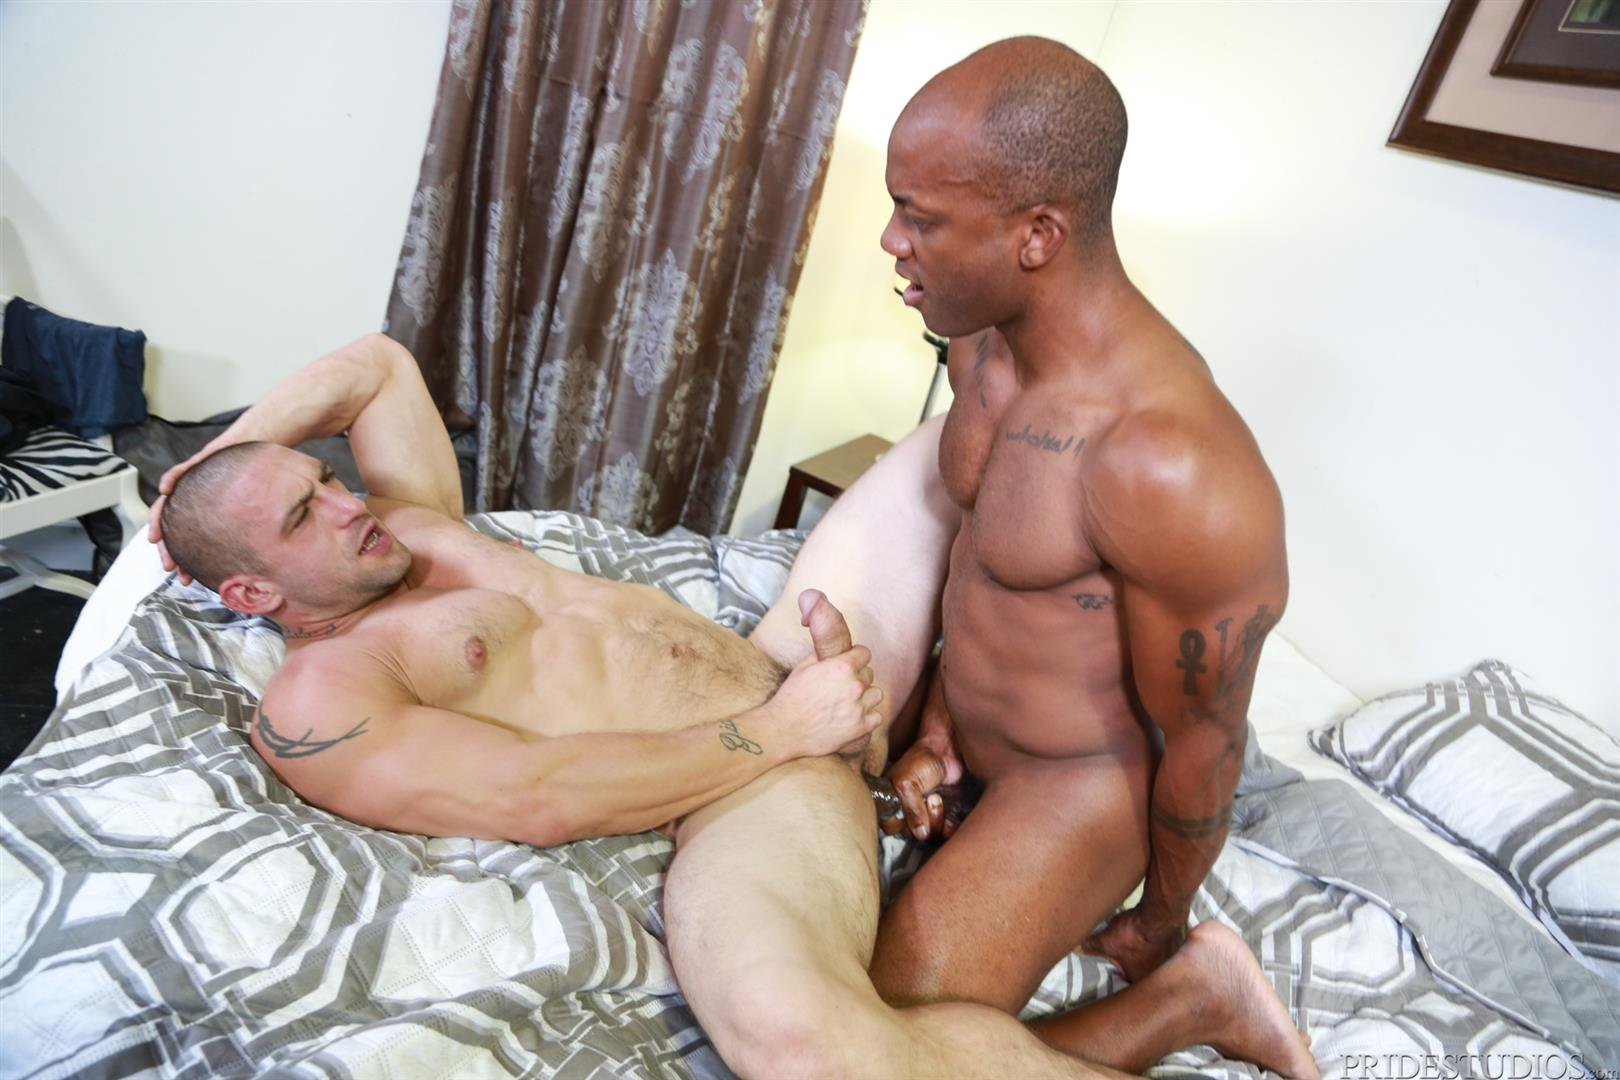 Extra-Big-Dicks-Osiris-Blade-and-Ceasar-Camaro-Big-Black-Cock-Interracial-Gay-Sex-14 White Muscle Hunk Begs For Big Black Cock